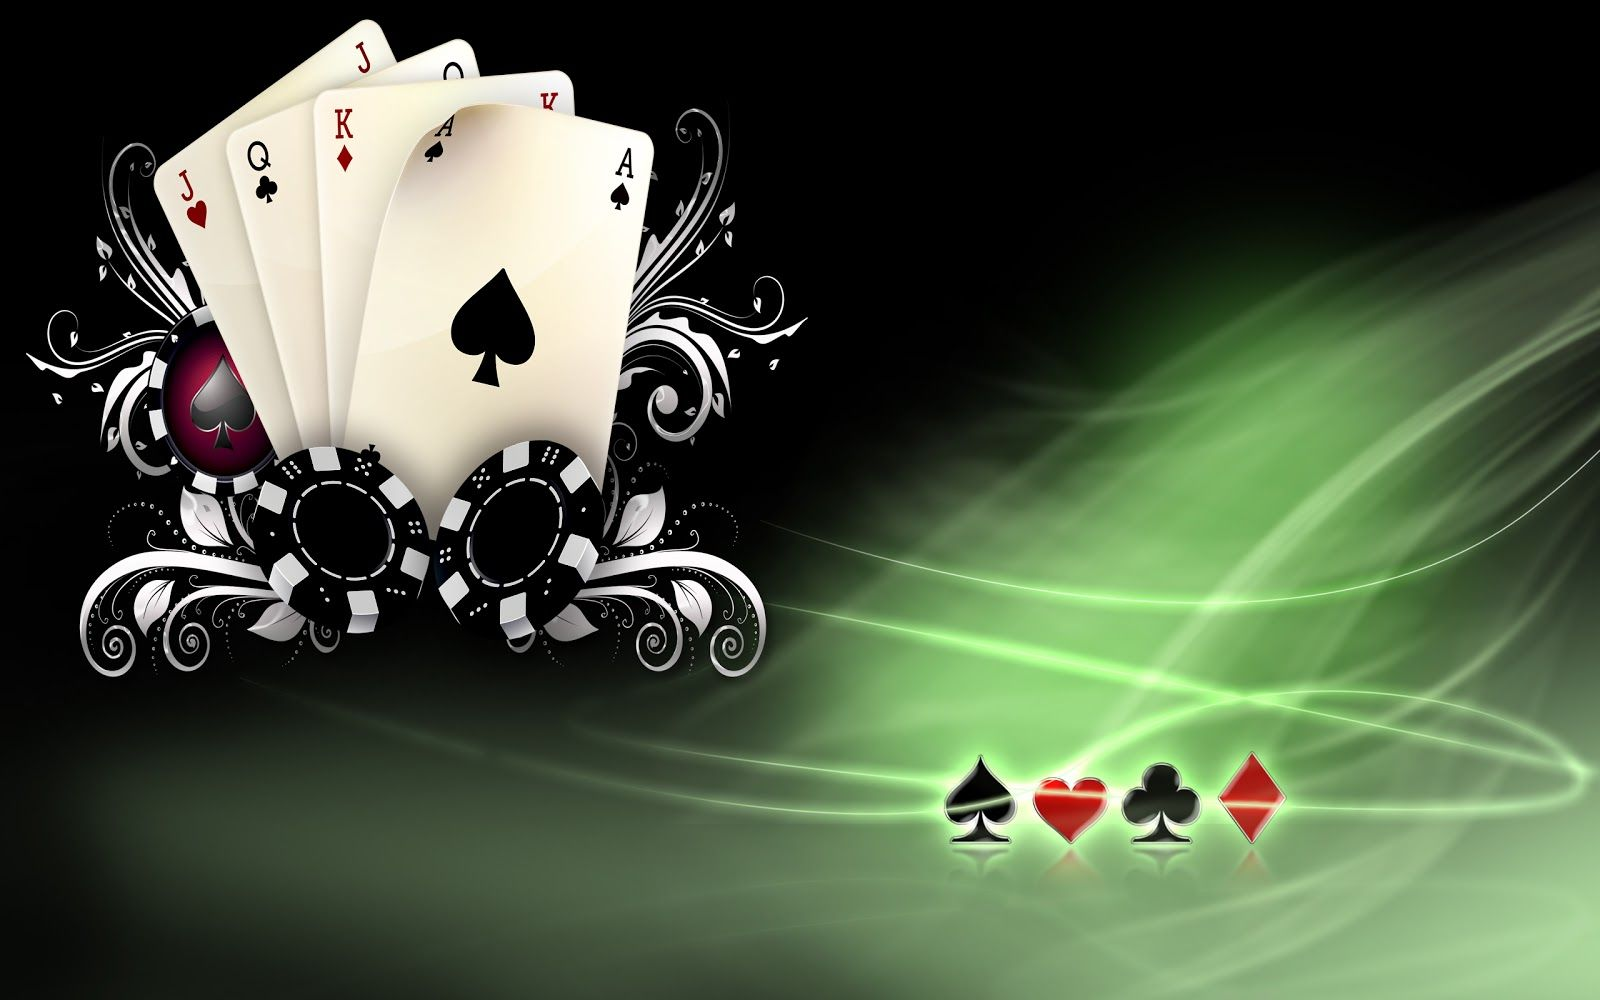 Well known types of poker games